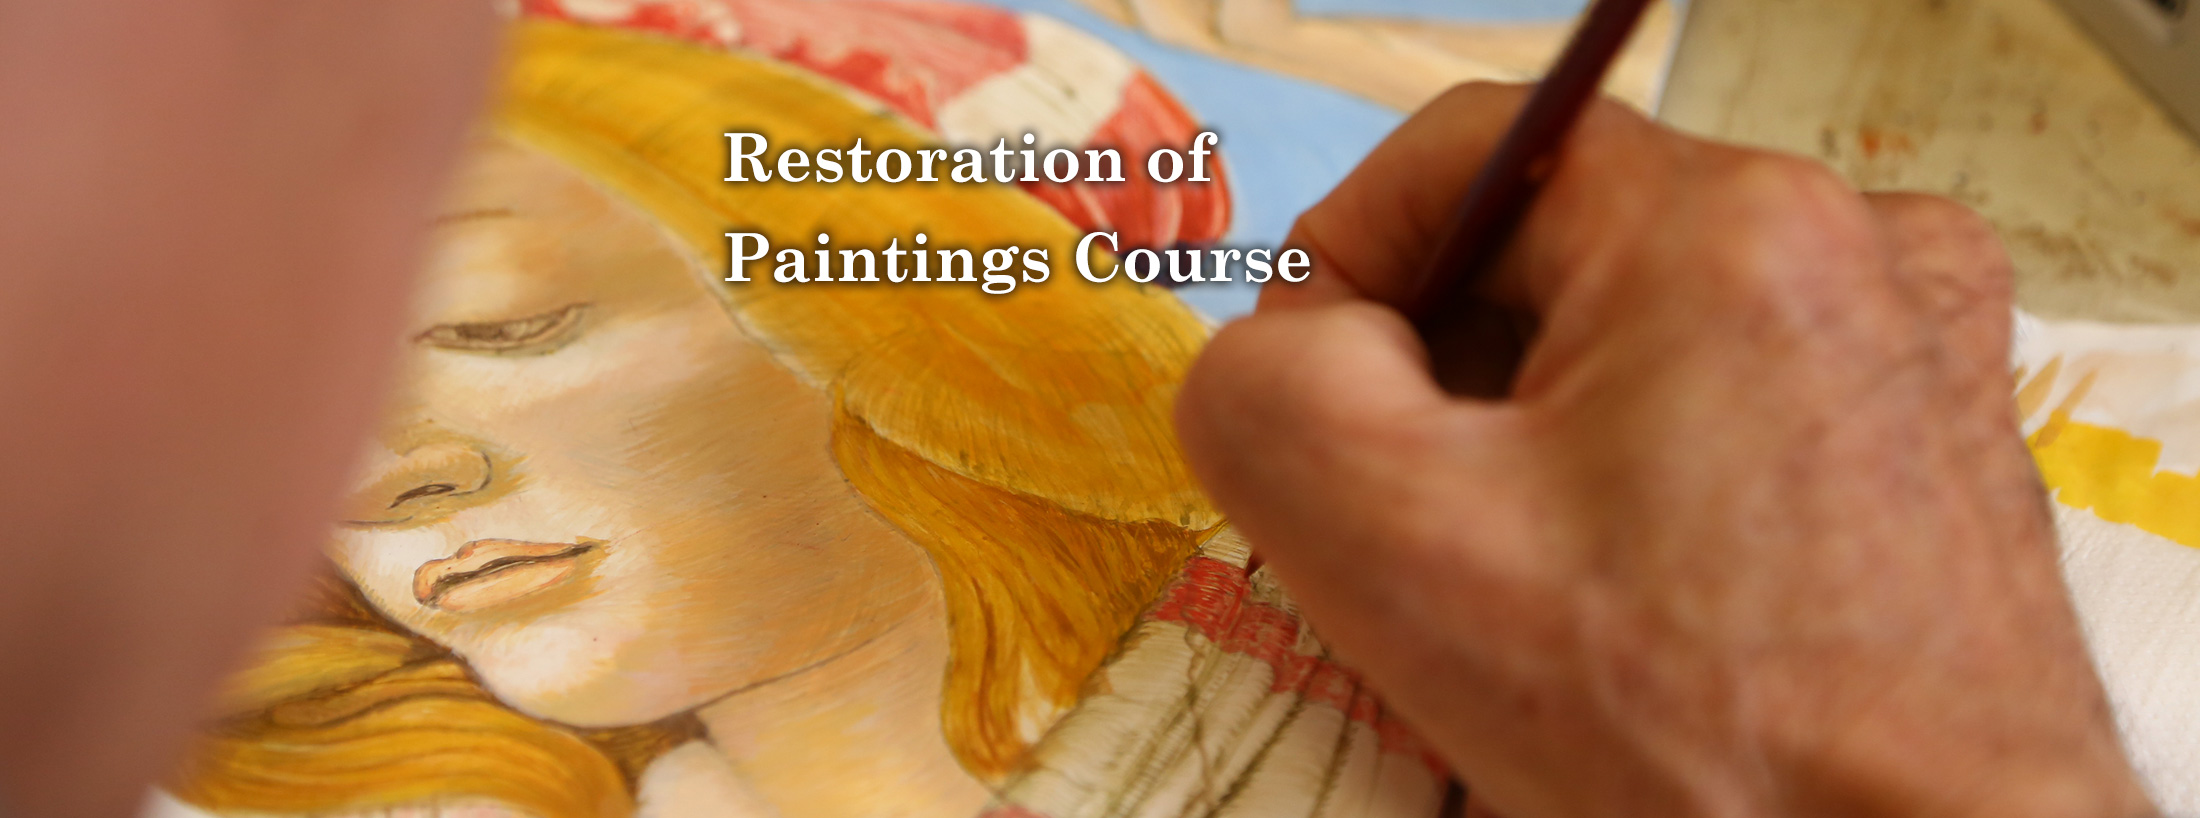 Restoration of Paintings Course